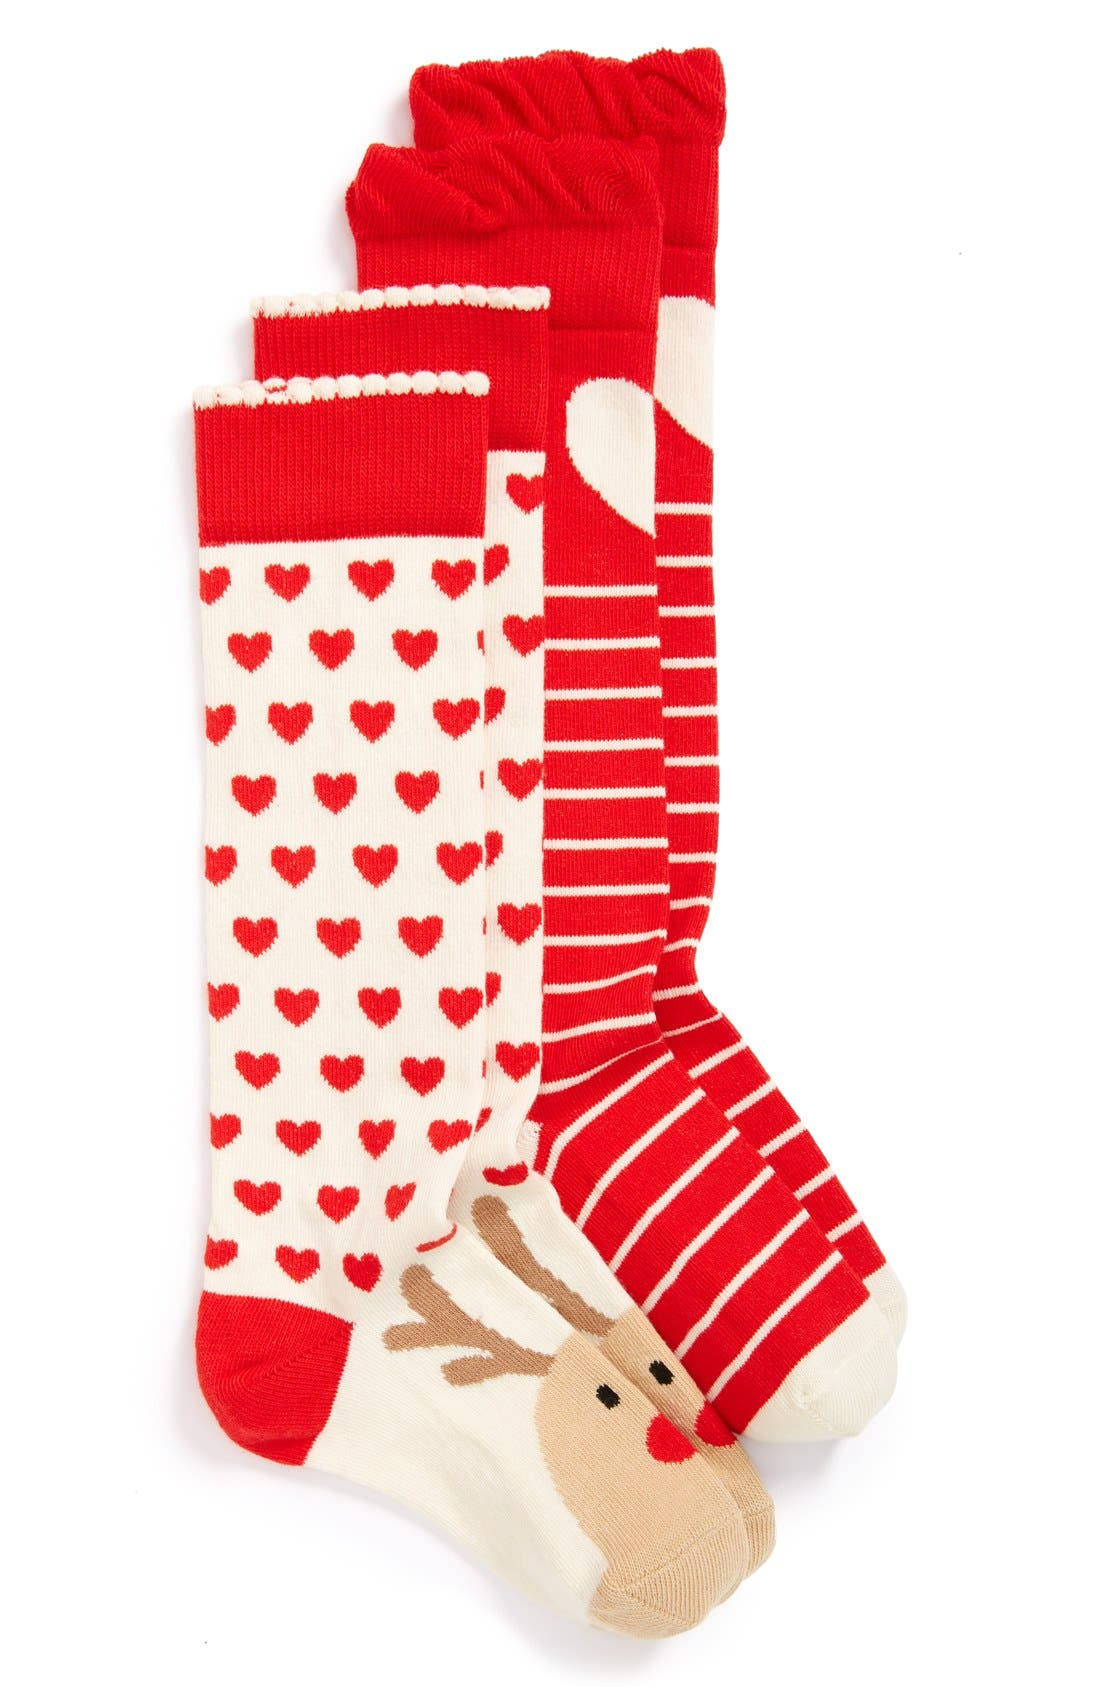 'Rudolph the Red Nosed Reindeer & Hearts' Knee High Socks, Main, color, 100